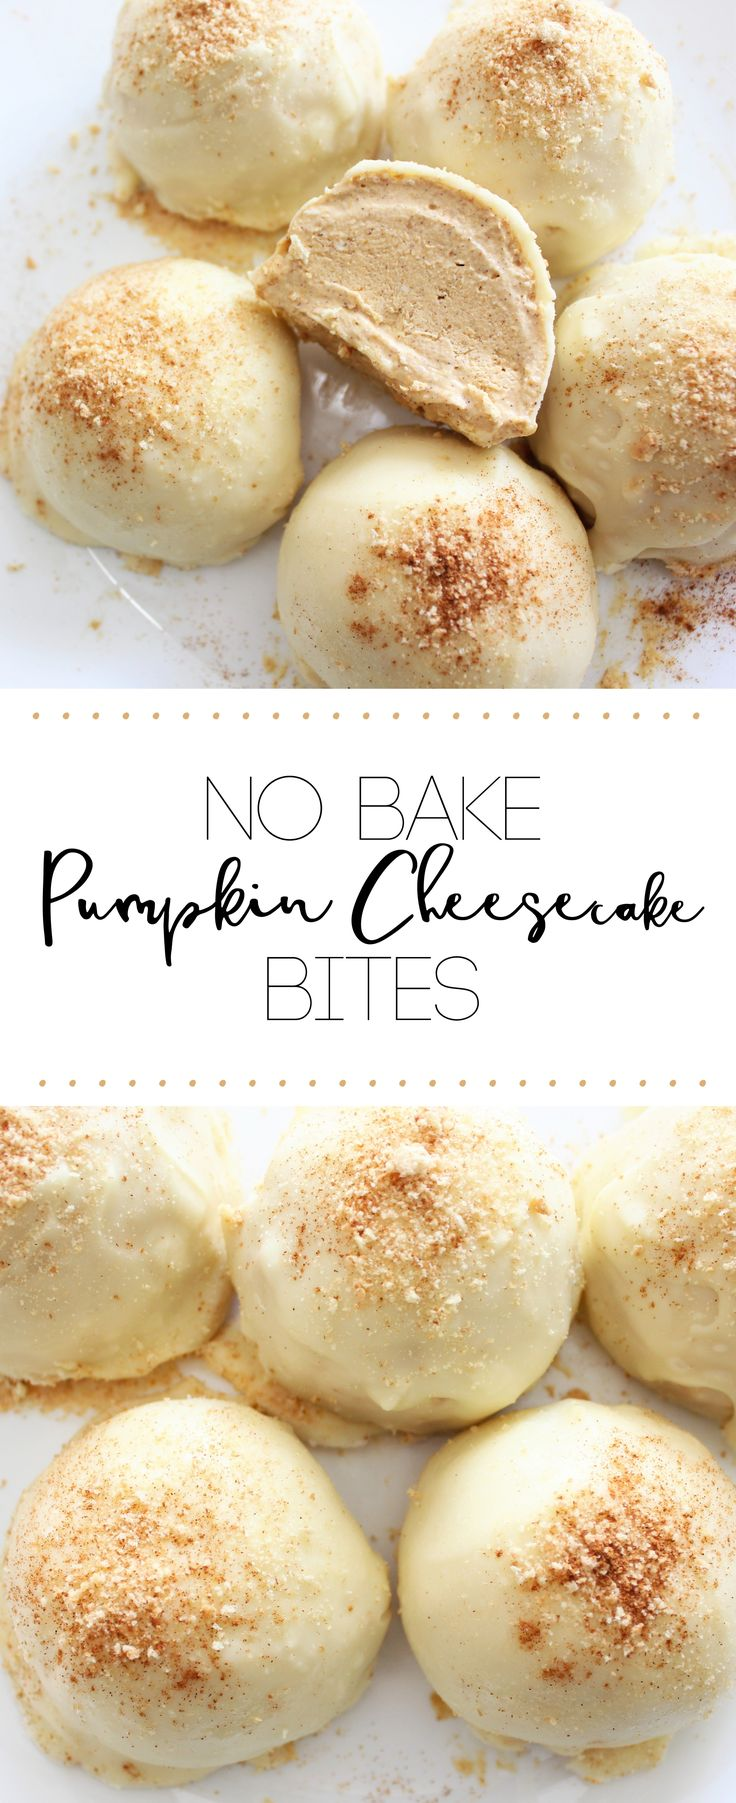 ... Pumpkin Cheesecake on Pinterest | Pumpkin Cheesecake, Baked Pumpkin